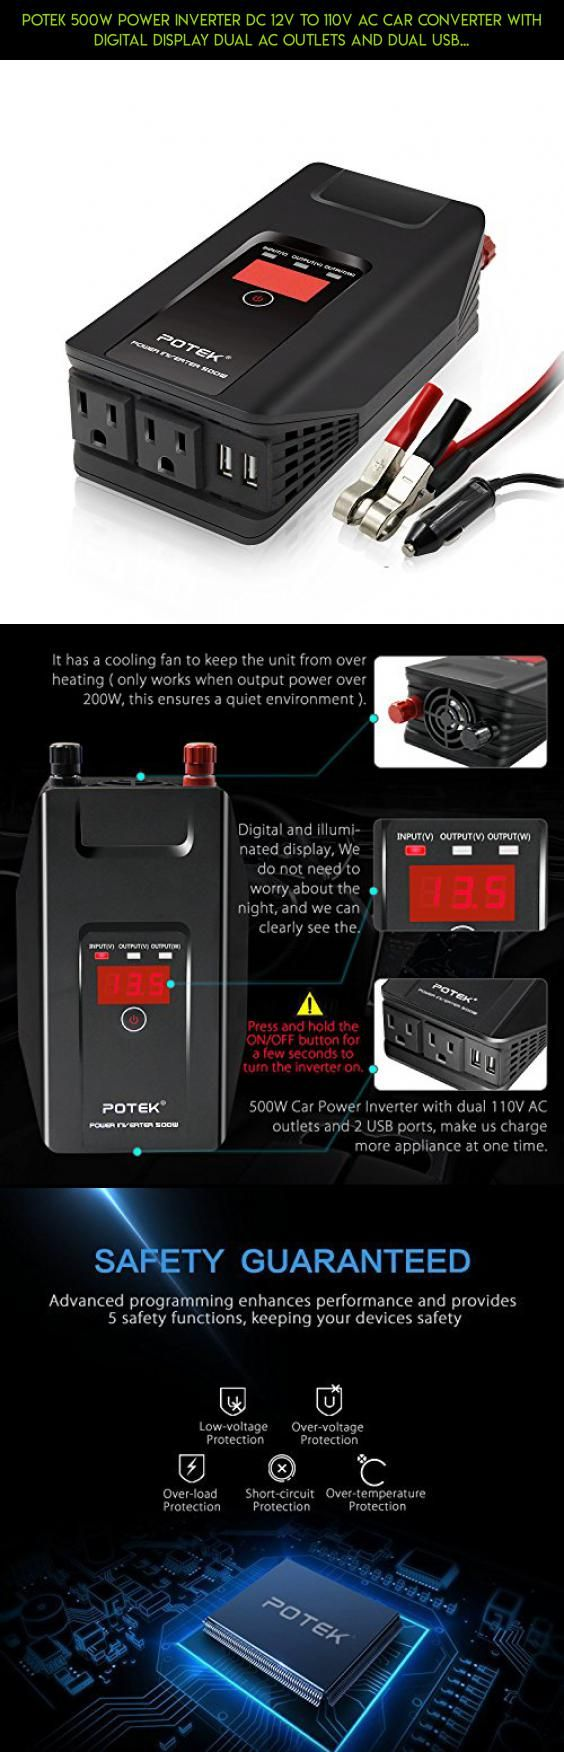 POTEK 500W Power Inverter DC 12V to 110V AC Car Converter with Digital Display Dual AC Outlets and Dual USB Charging Ports for Tablets, Laptops and Smartphones #gadgets #unit #technology #cooling #kit #fpv #drone #and #camera #parts #plans #products #tech #heating #shopping #racing